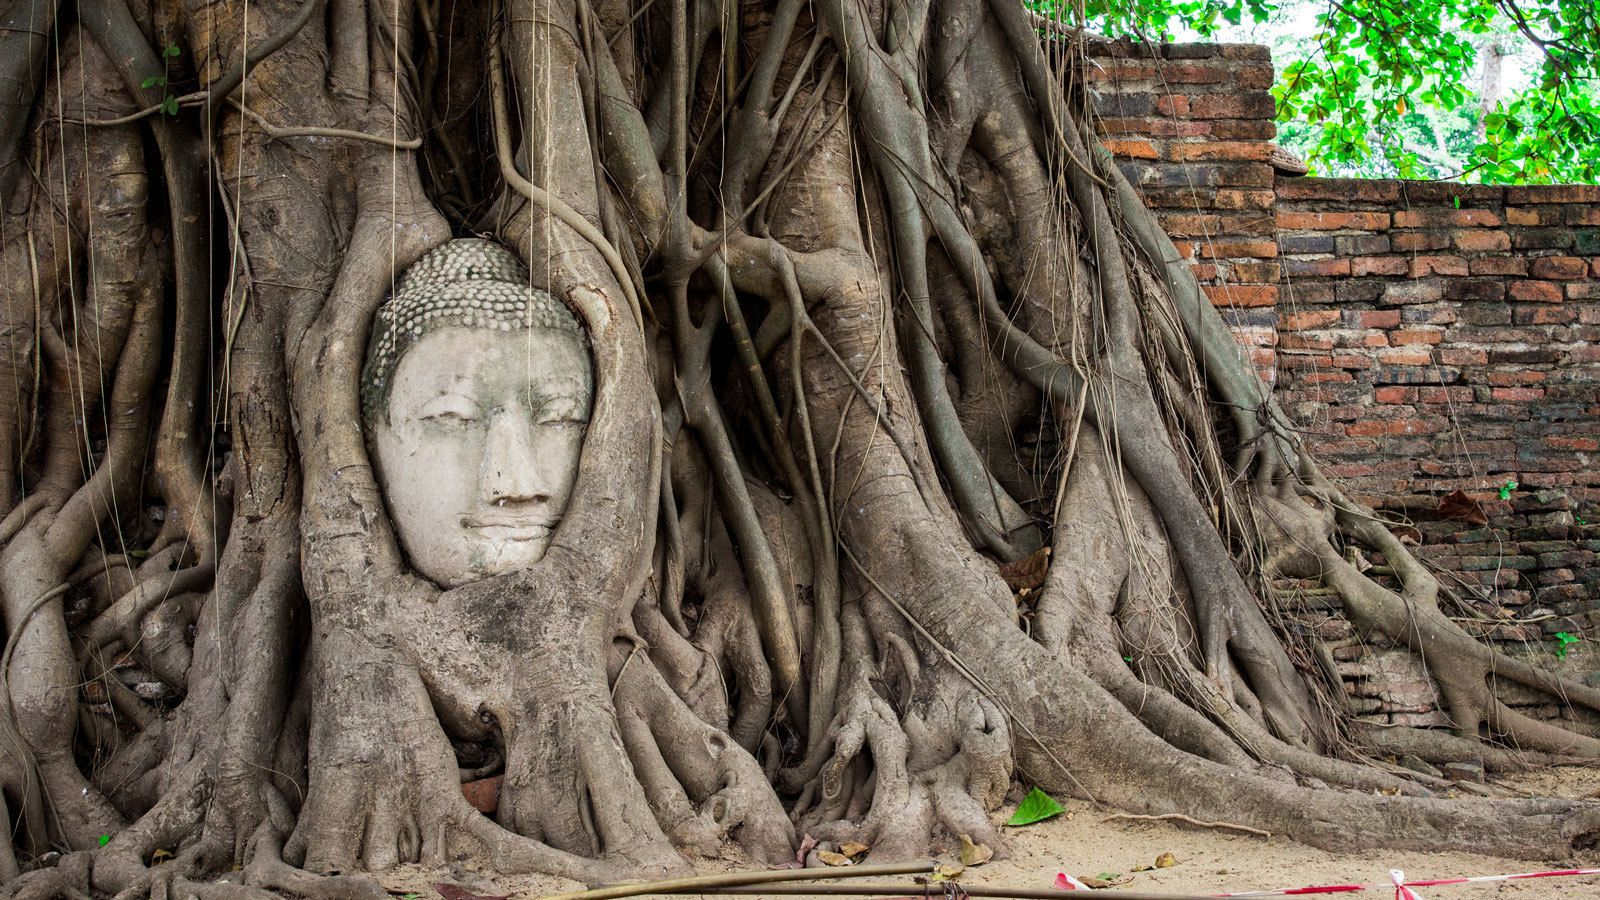 head sculpture of Buddha partially engulfed by tree roots in Bangkok